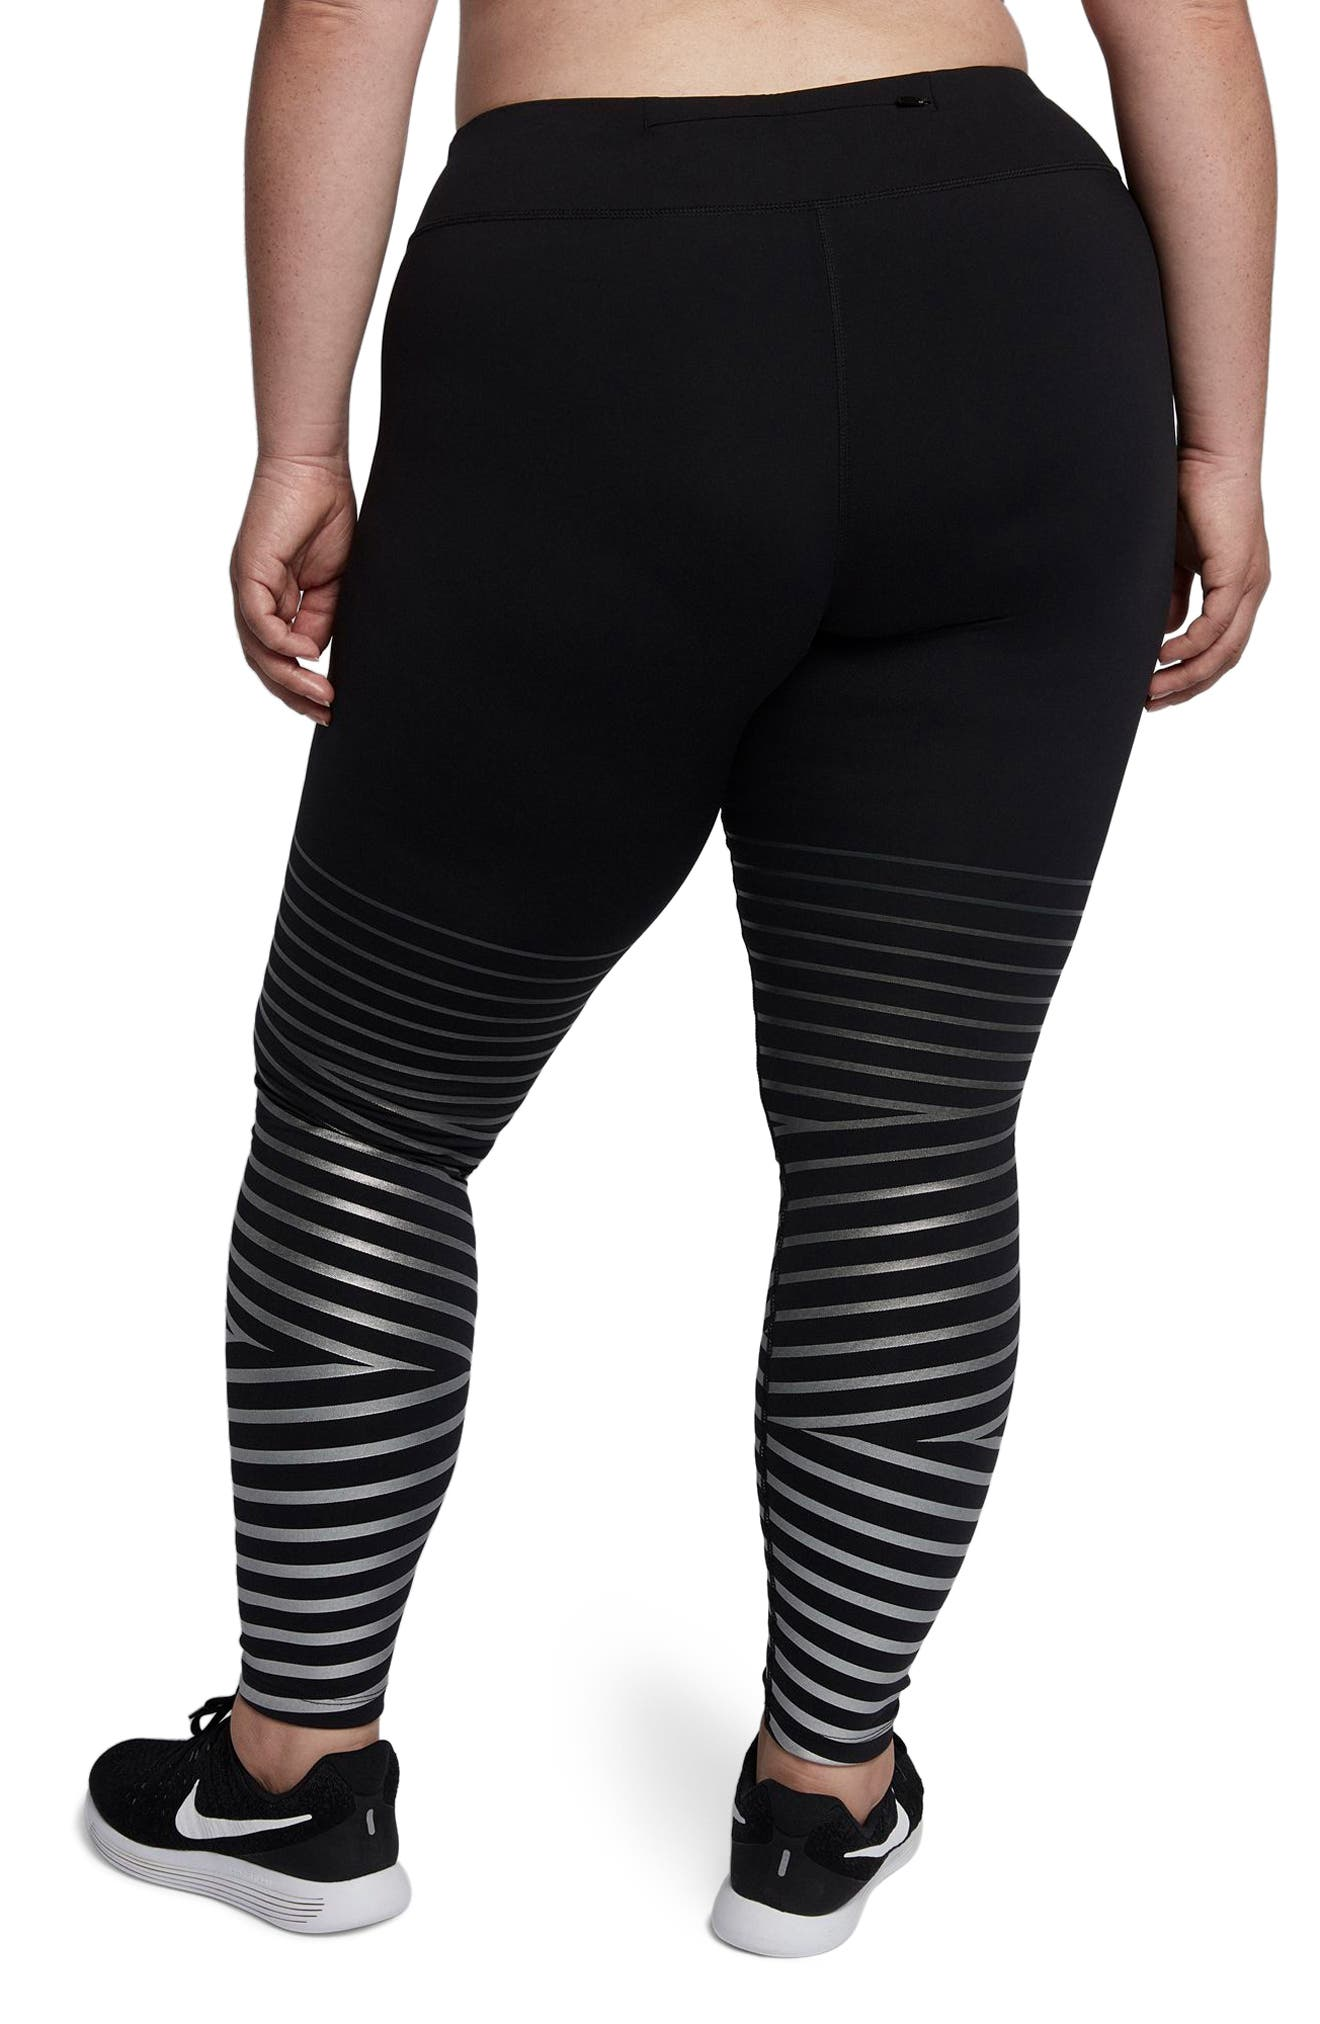 Power Flash Epic Running Tights,                             Alternate thumbnail 3, color,                             010